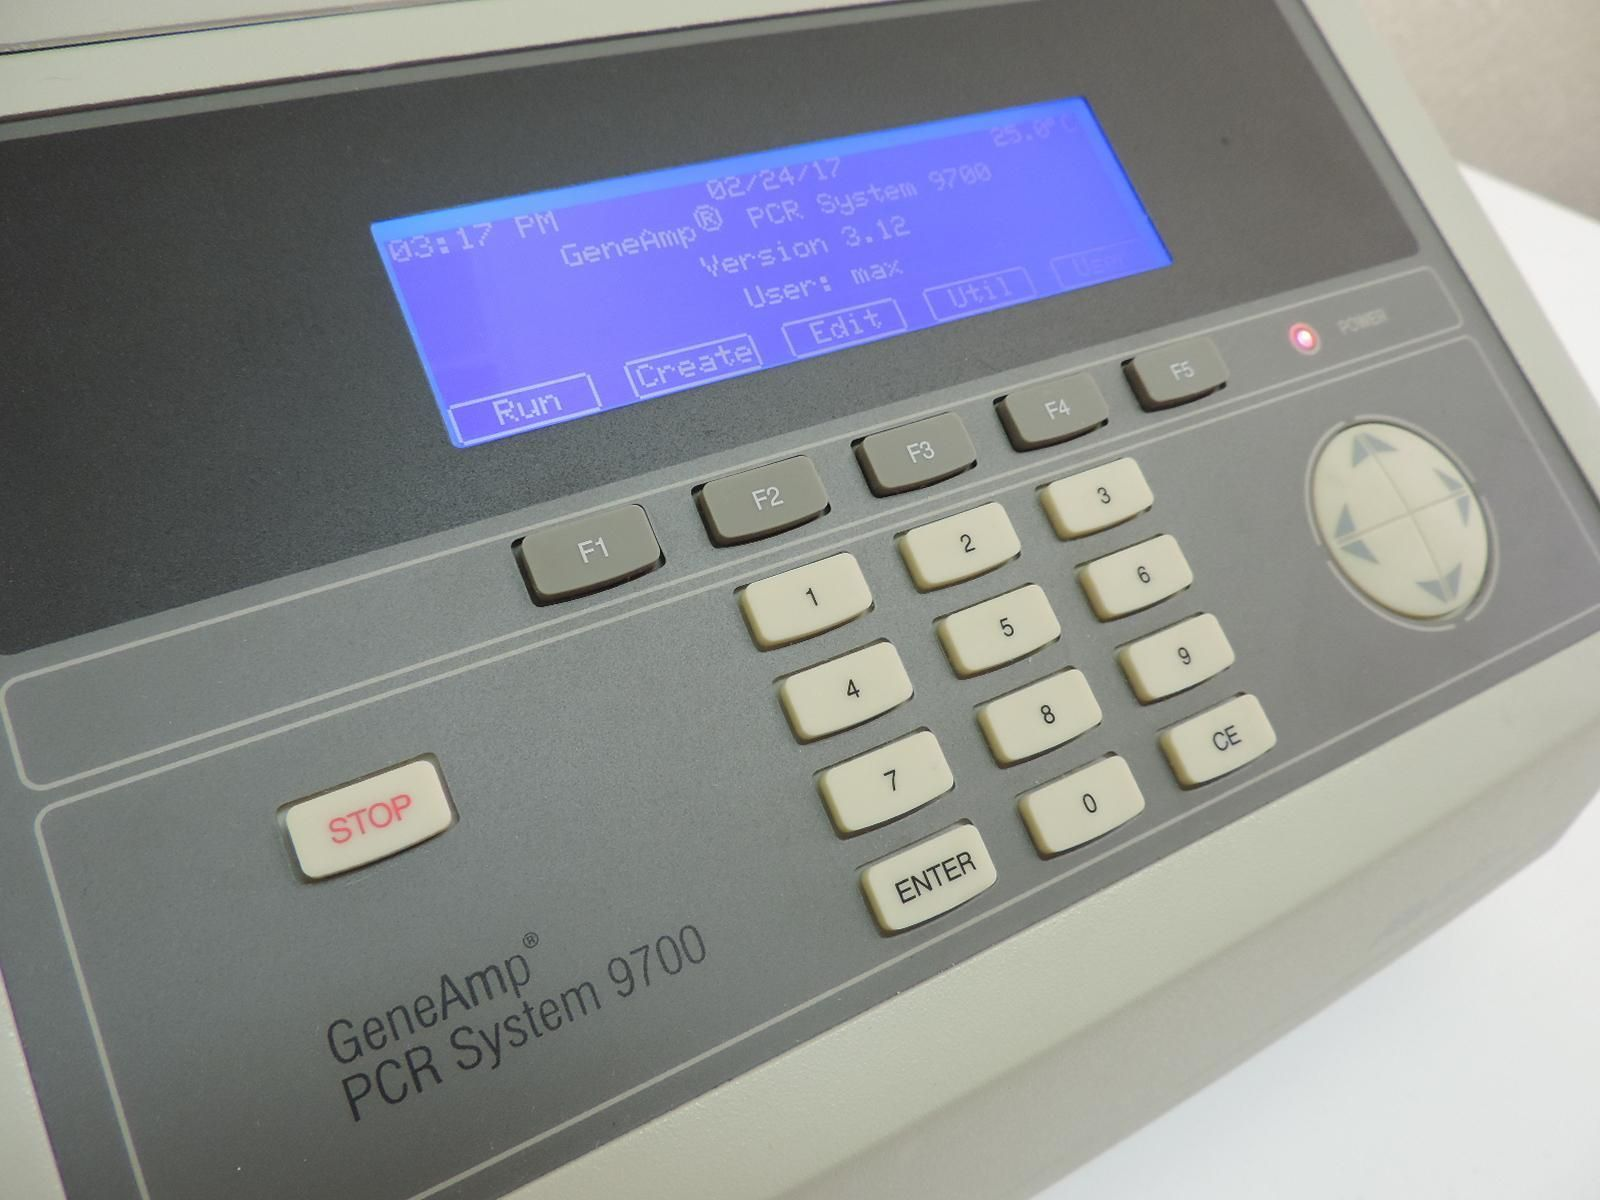 ABI 9700 96-Well Aluminum PCR Thermal Cycler